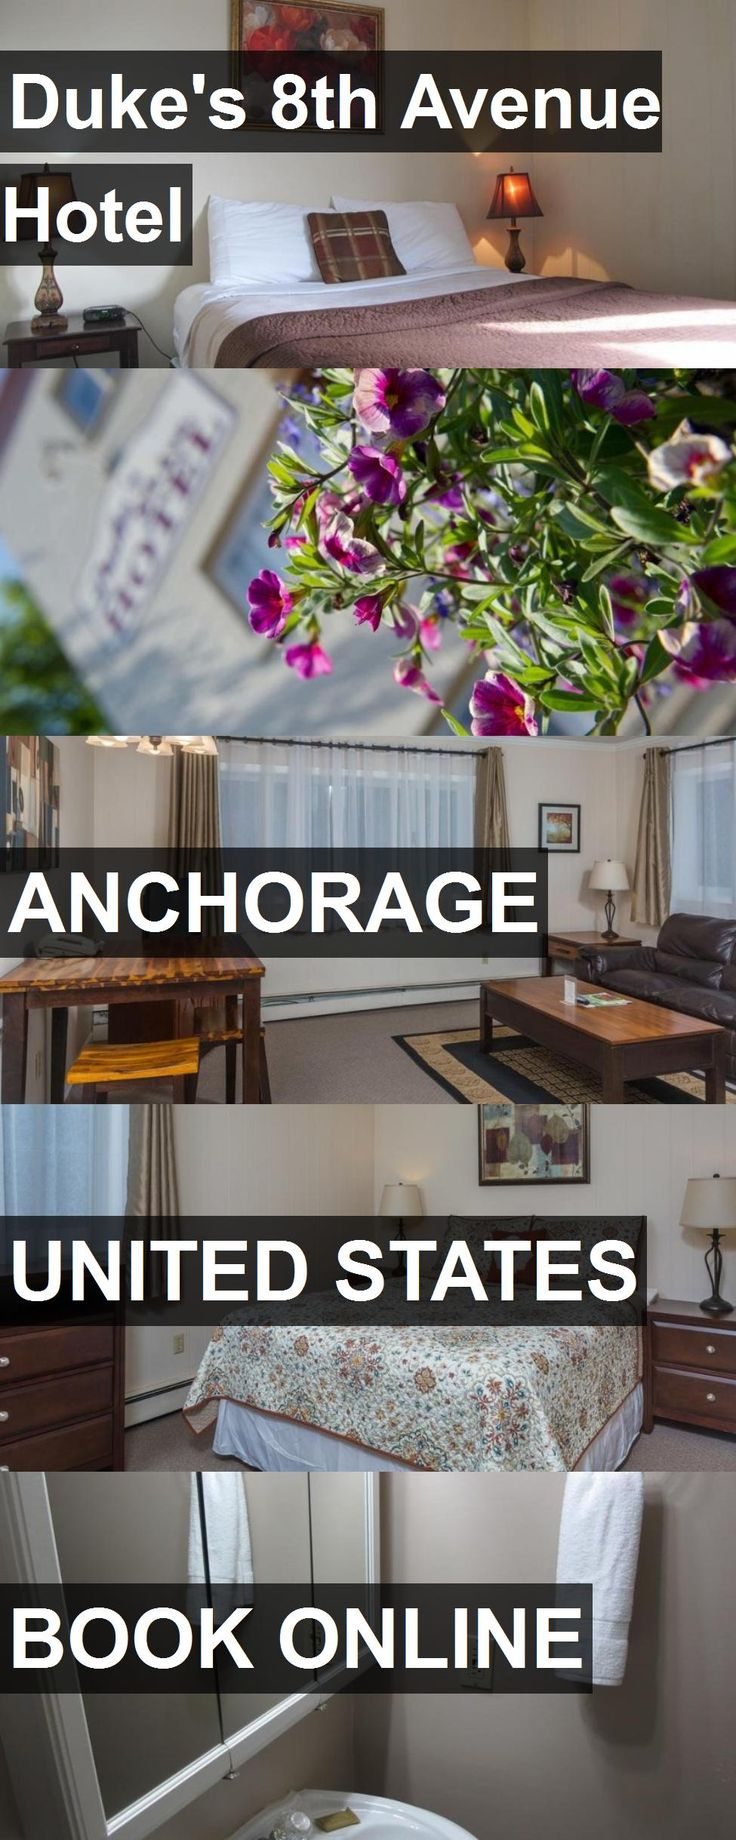 Duke's 8th Avenue Hotel in Anchorage, United States. For more information, photos, reviews and best prices please follow the link. #UnitedStates #Anchorage #travel #vacation #hotel